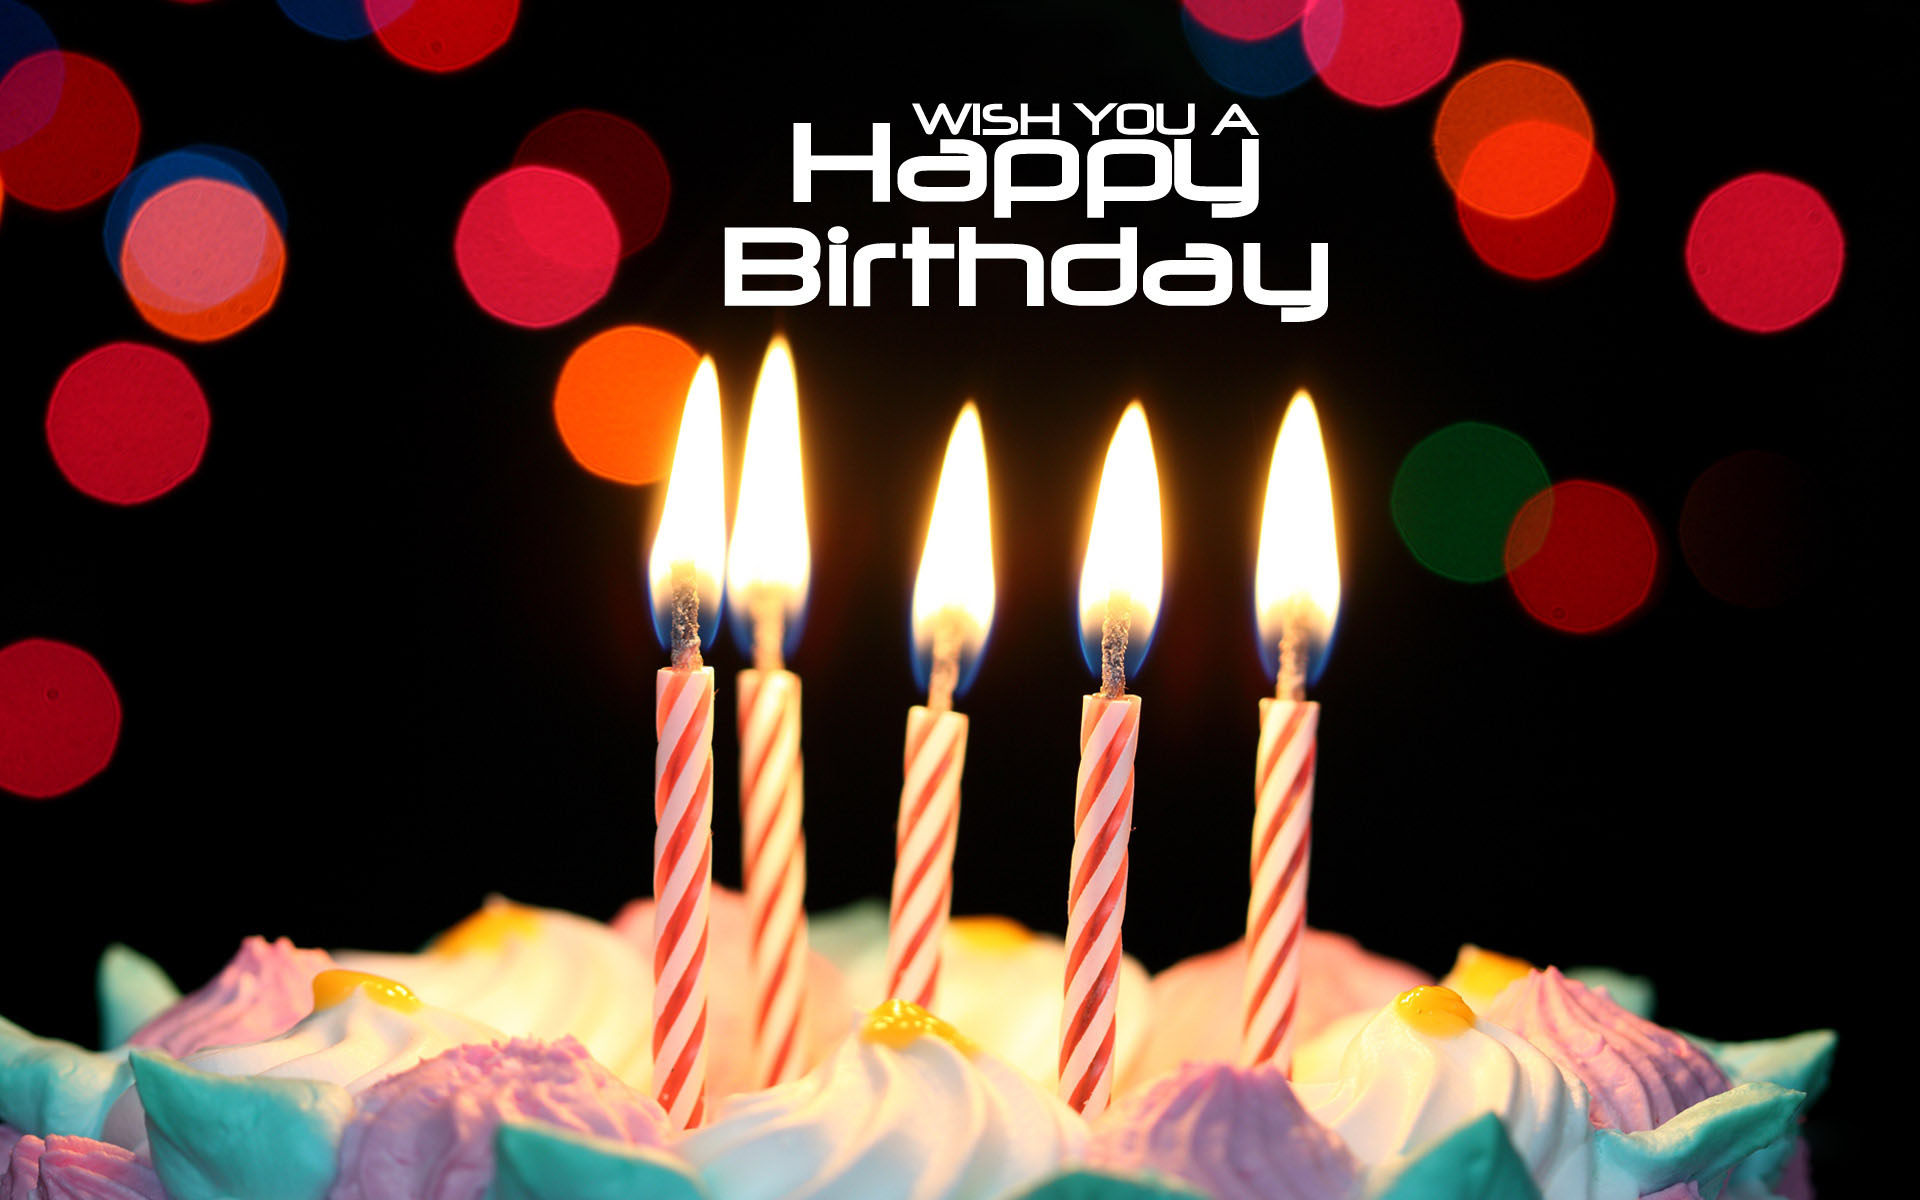 Happy birthday wallpapers images cards wallpapers for - Happy birthday card wallpaper ...